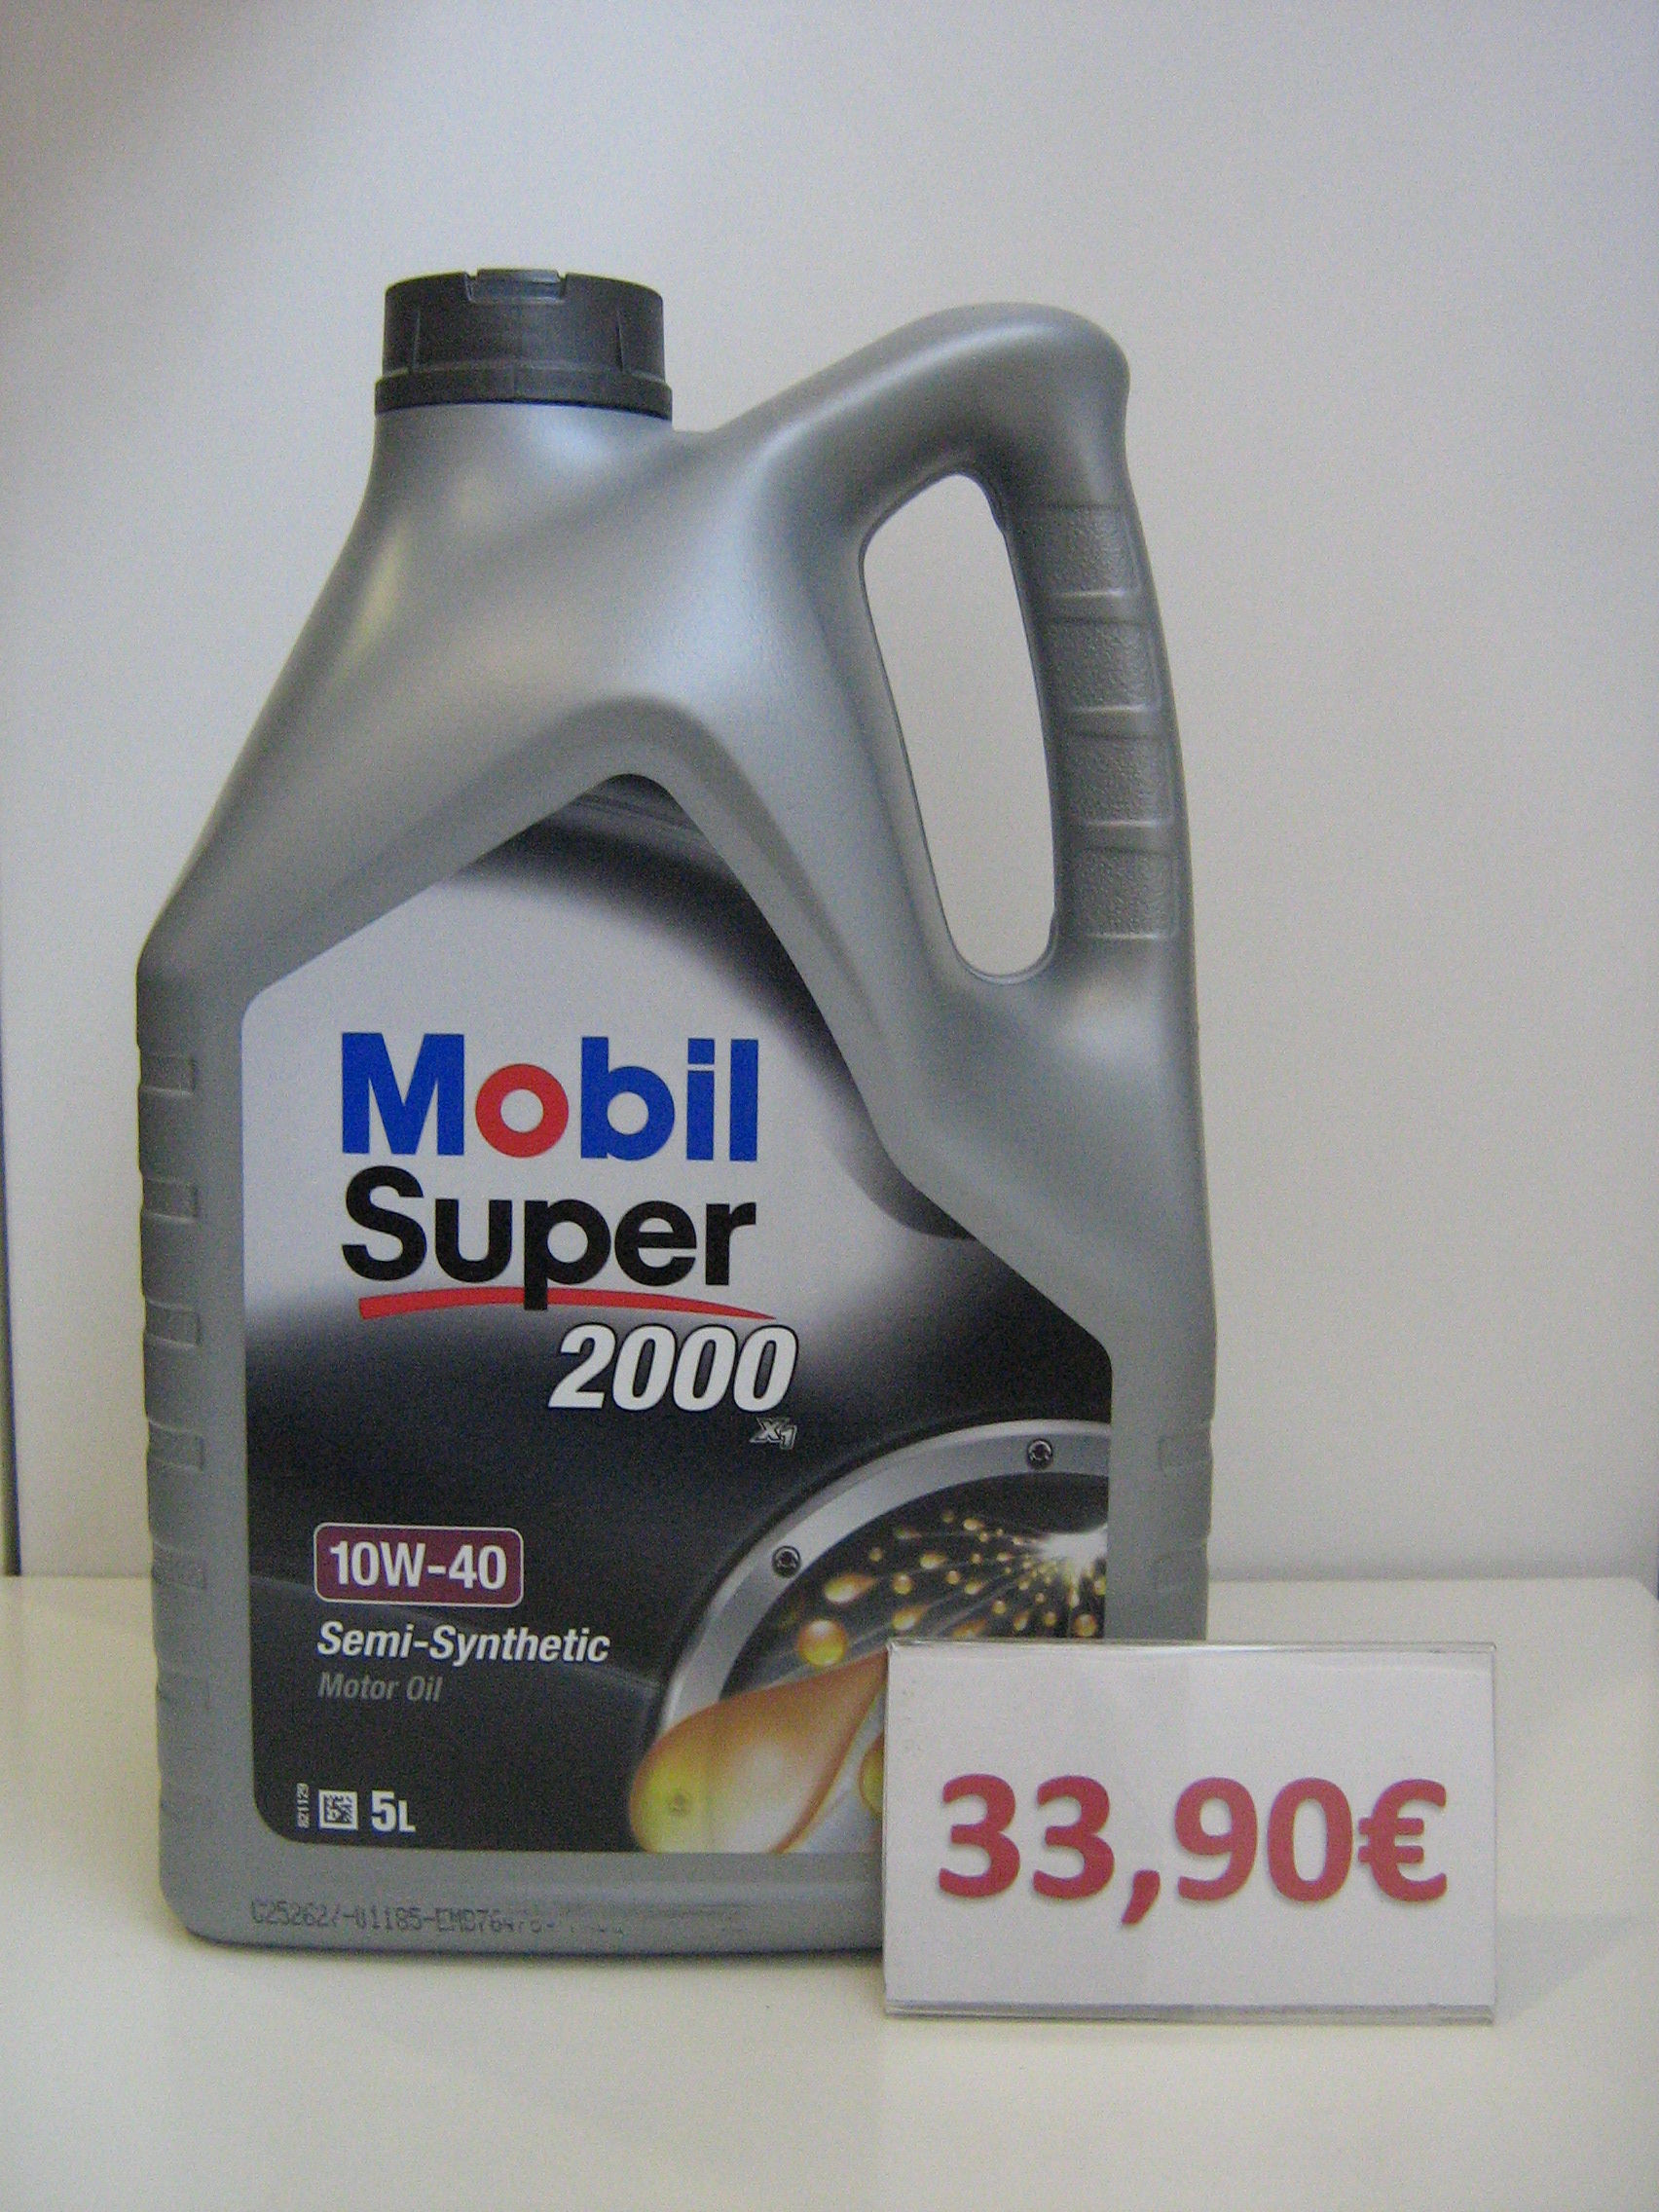 mobil super 2000x1 10w40: Servicios de Safety Car